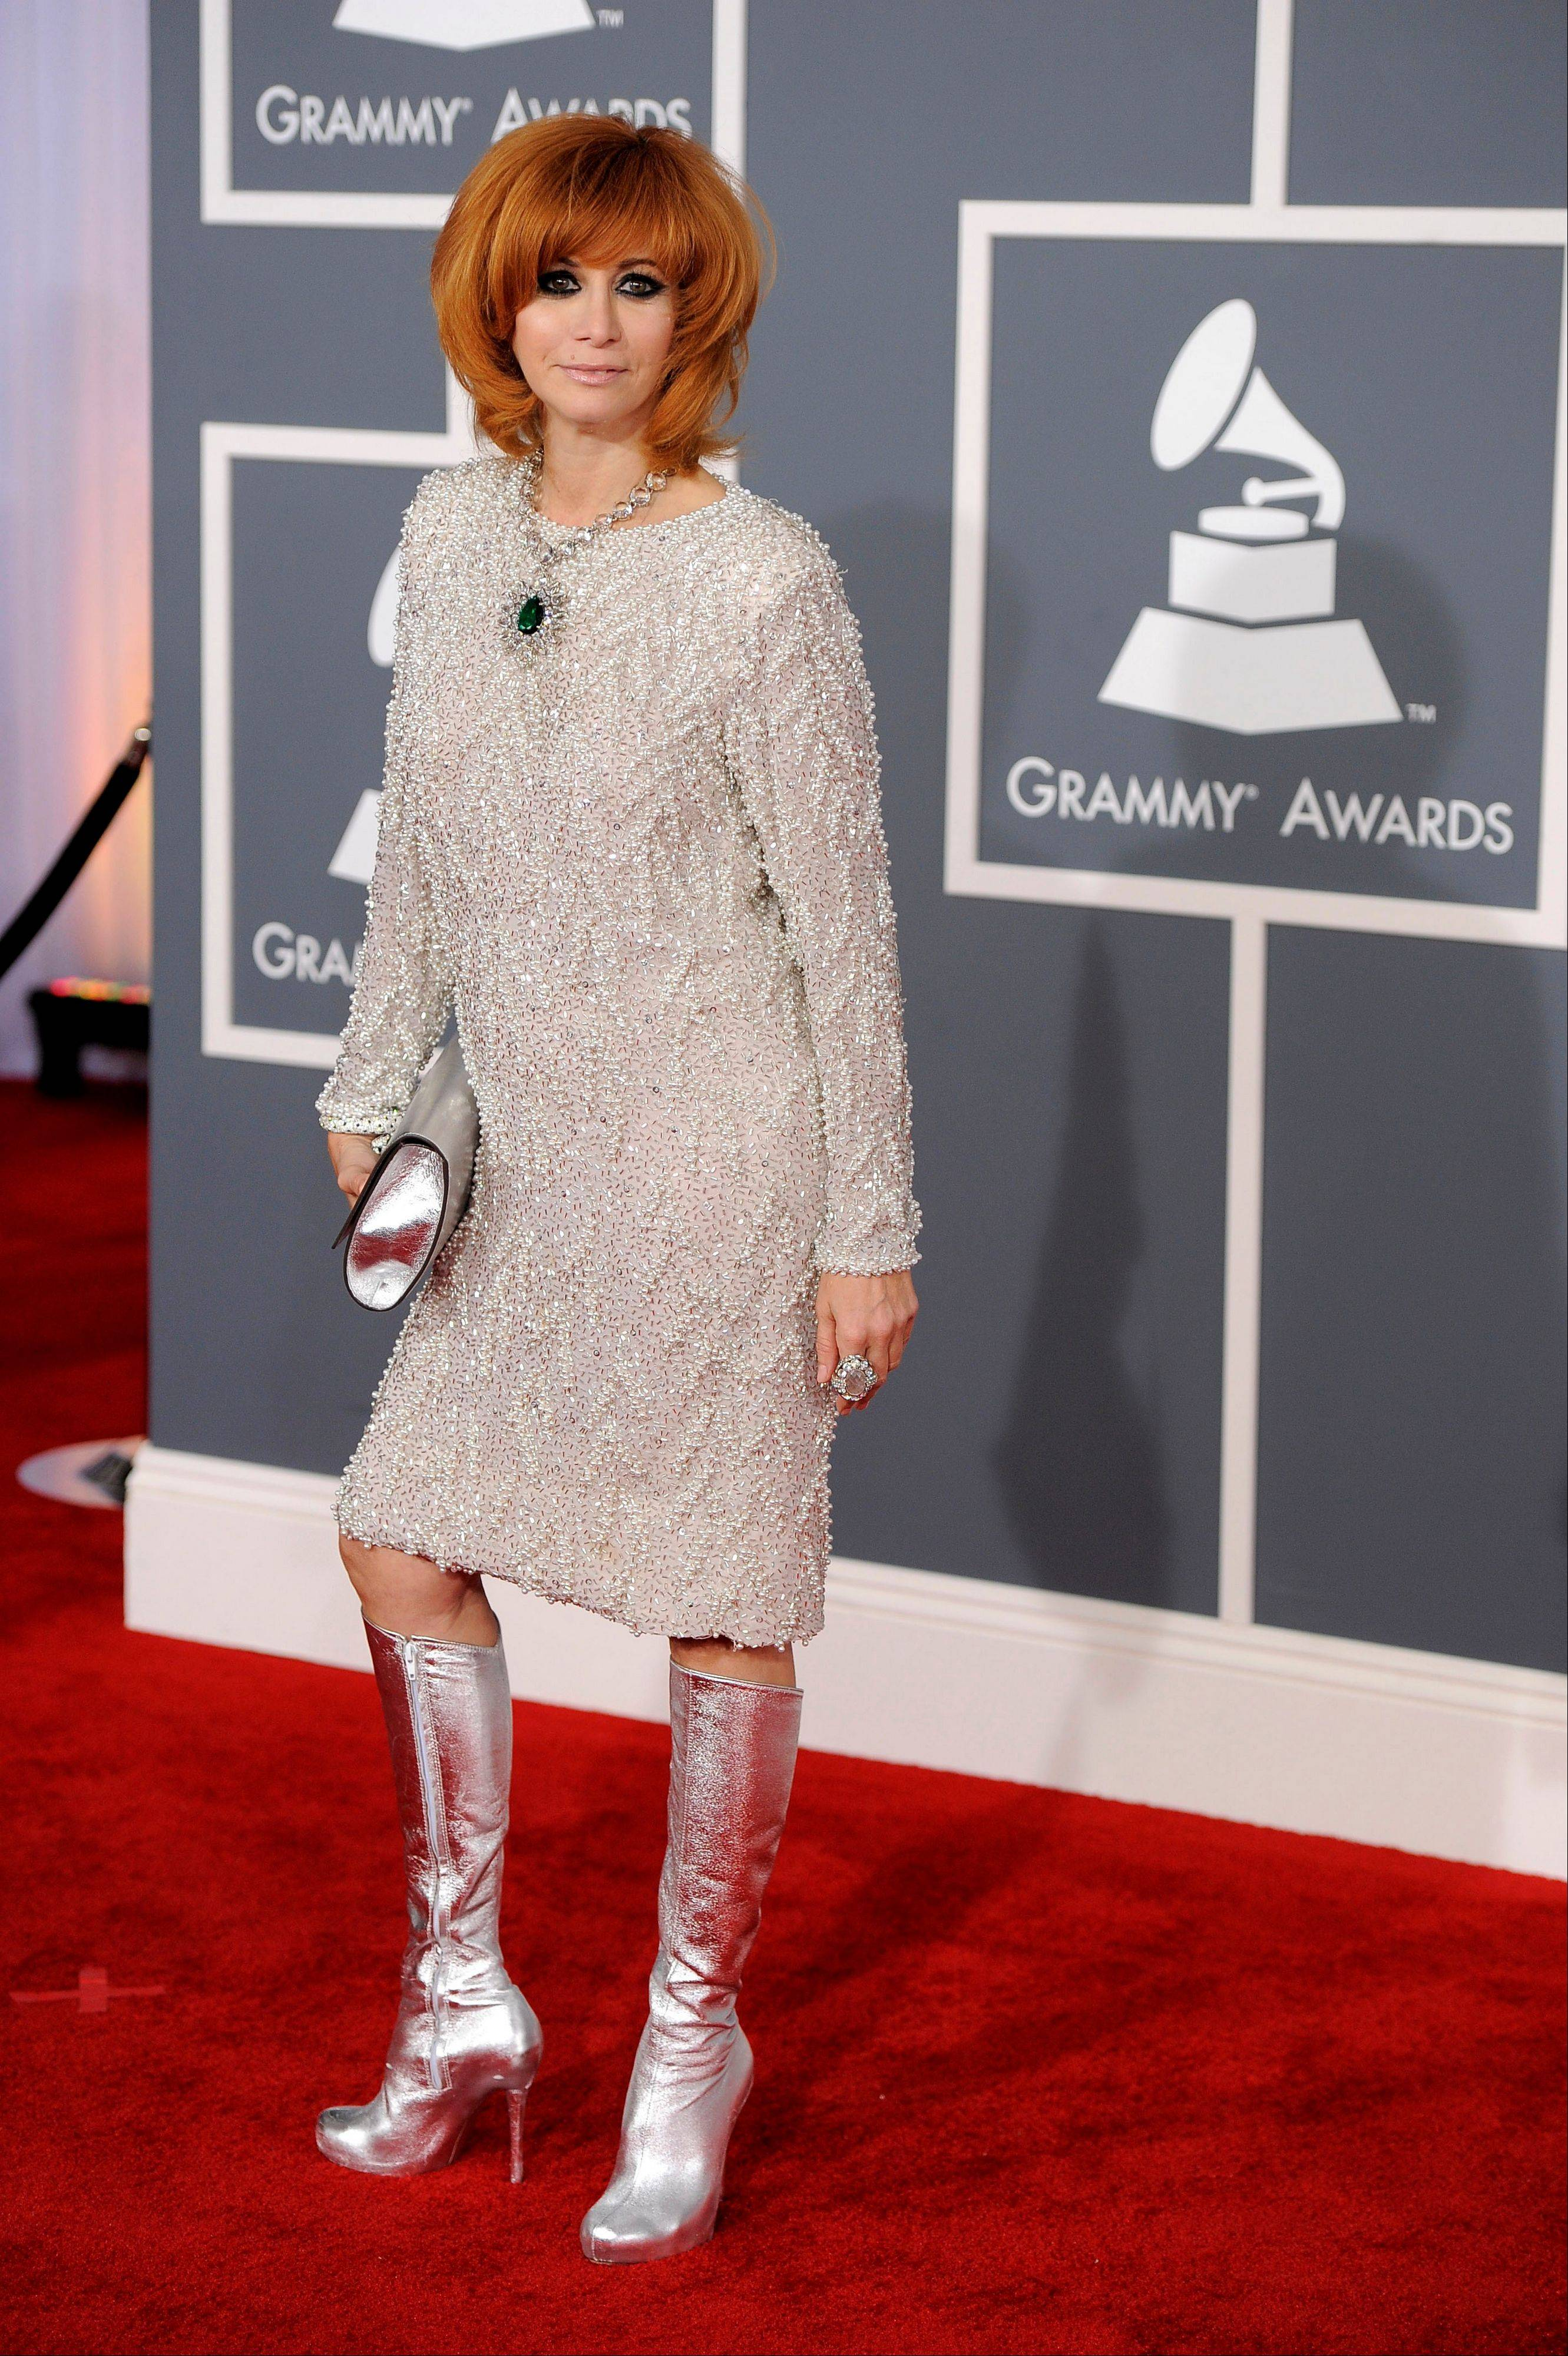 Linda Ramone arrives Sunday at the 54th annual Grammy Awards in Los Angeles.